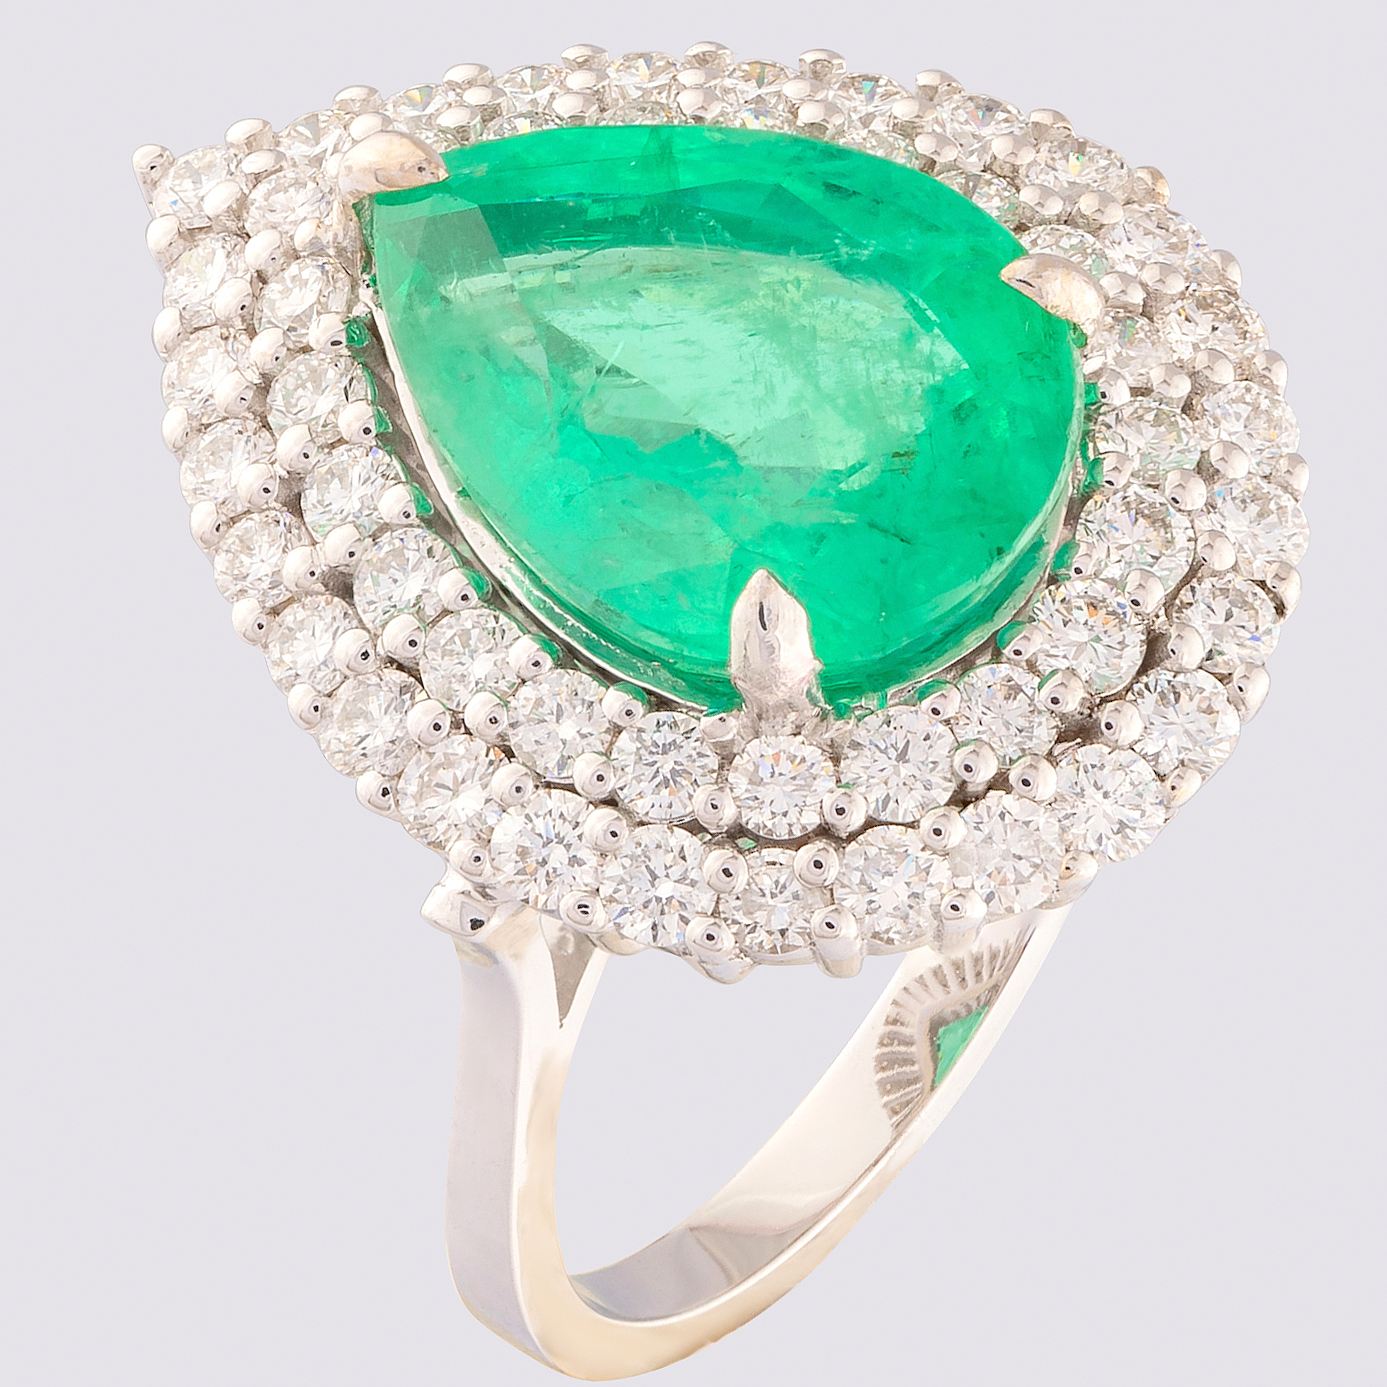 14K White Gold Cluster Ring 4,70 Ct. Natural Emerald - 1,40 Ct. Diamond